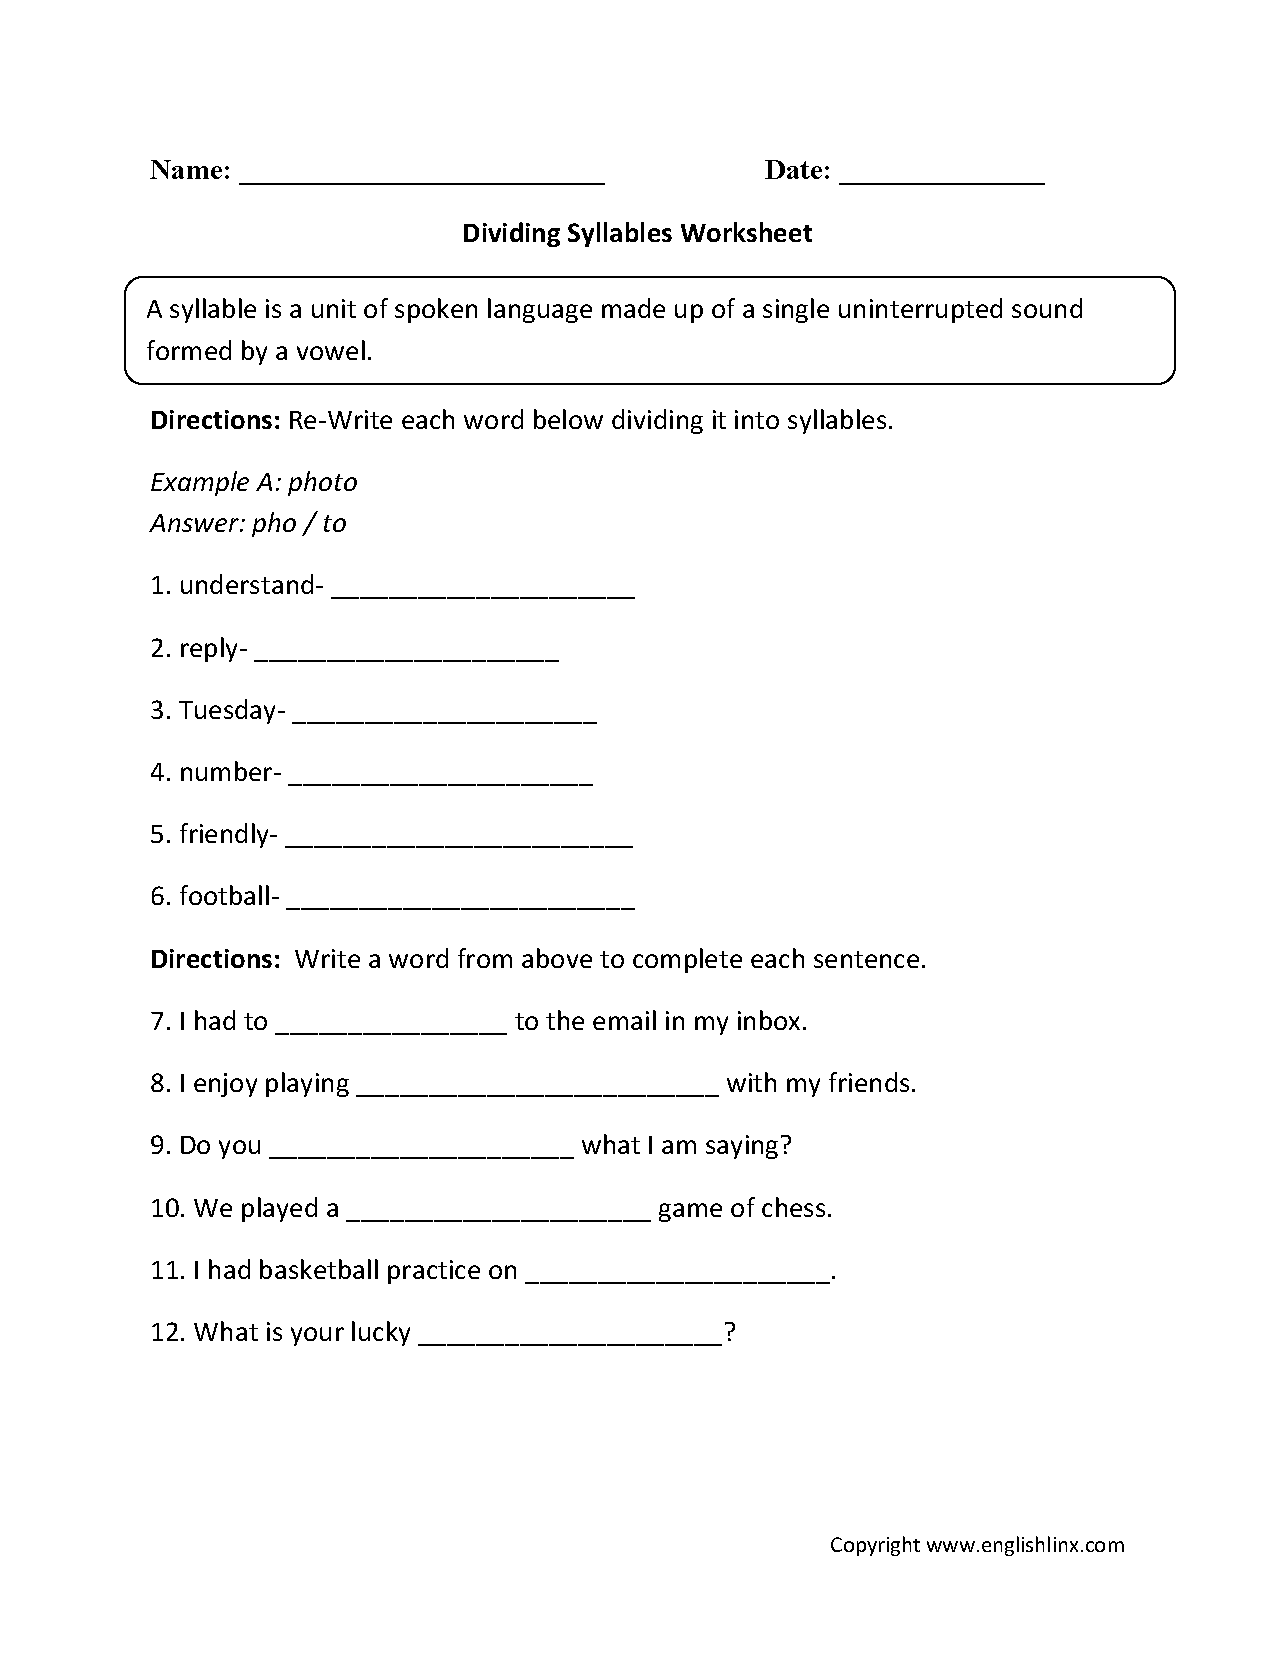 Dividing Syllables Worksheet With Images